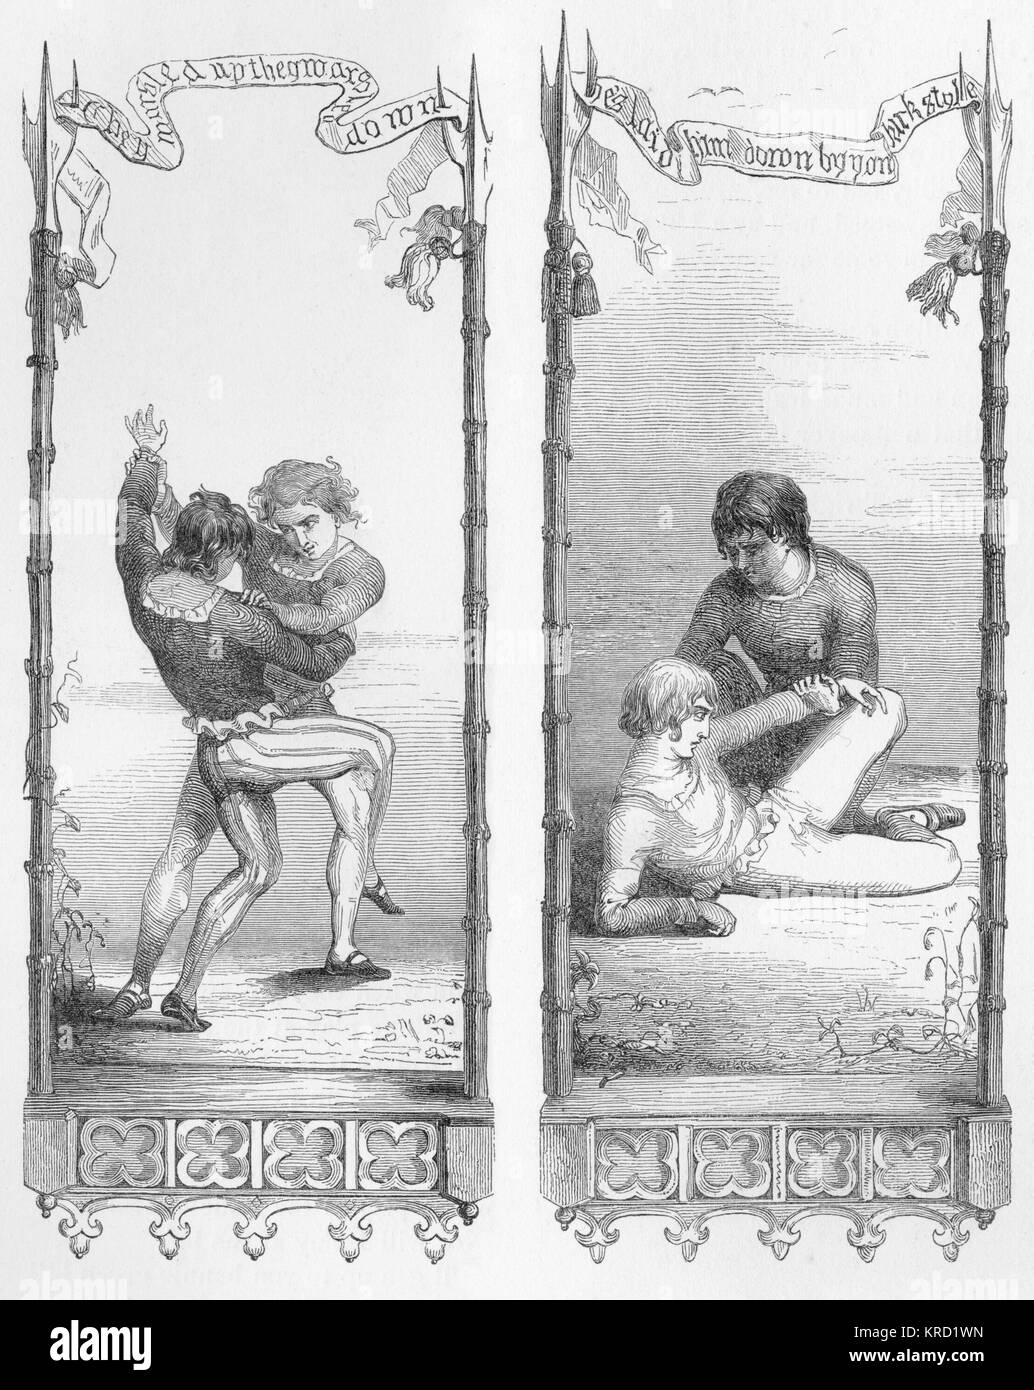 THE TWA BROTHERS.  Popular British Ballad.  Two brothers are wrestling when a blade that one of them is carrying - Stock Image